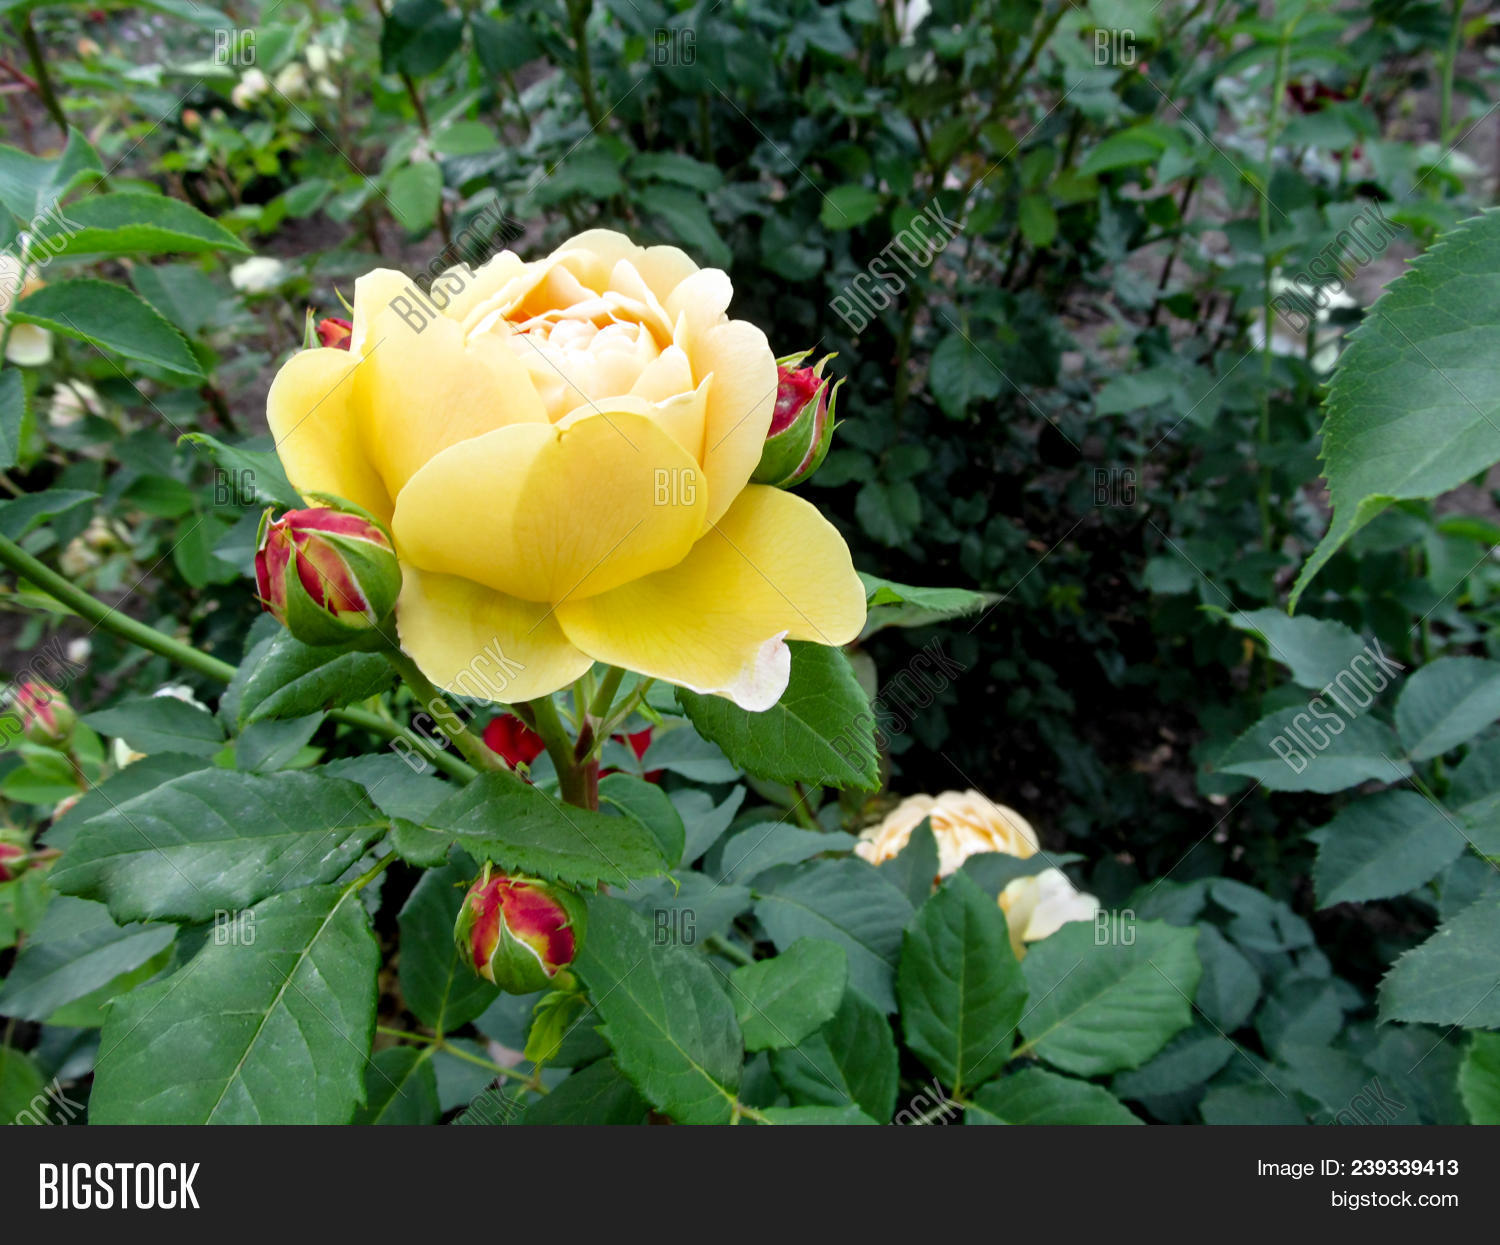 Beautiful yellow rose image photo free trial bigstock a beautiful yellow rose flower of amber queen variety with pink buds elegant izmirmasajfo